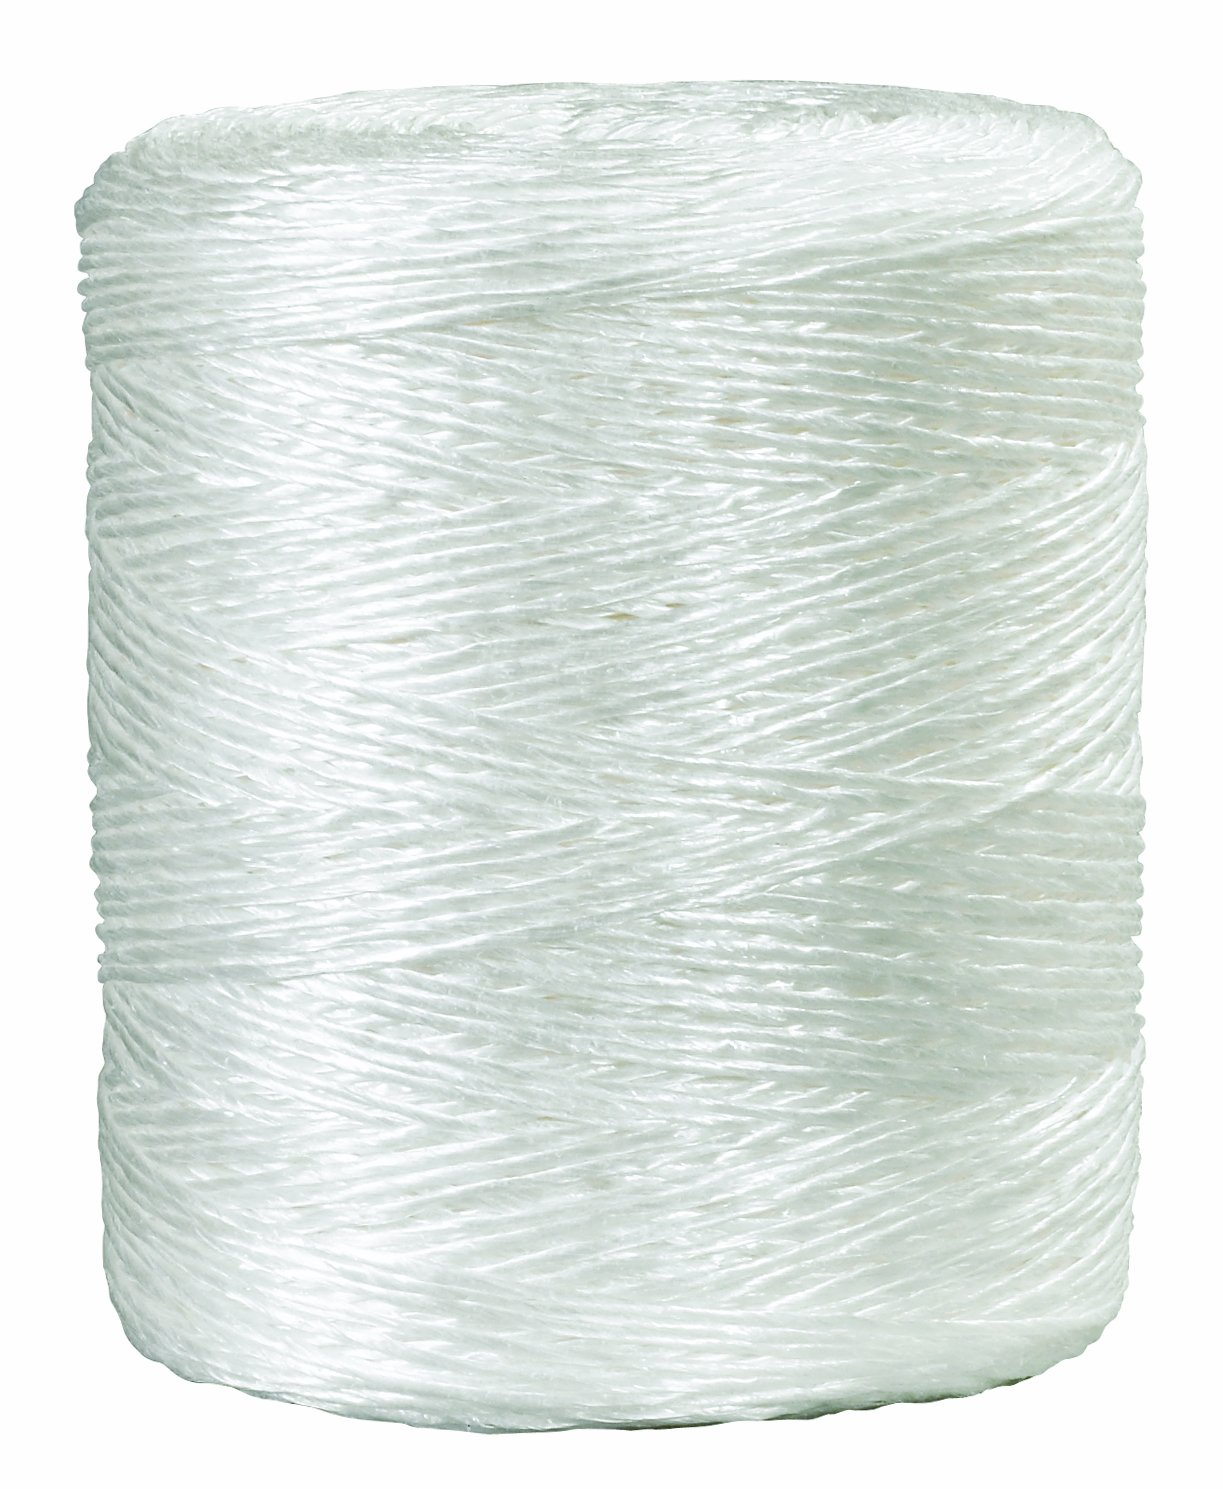 Aviditi TWT350 Polypropylene Tying Twine, 1 Ply, 3500' Length, 325 lbs Tensile Strength, White